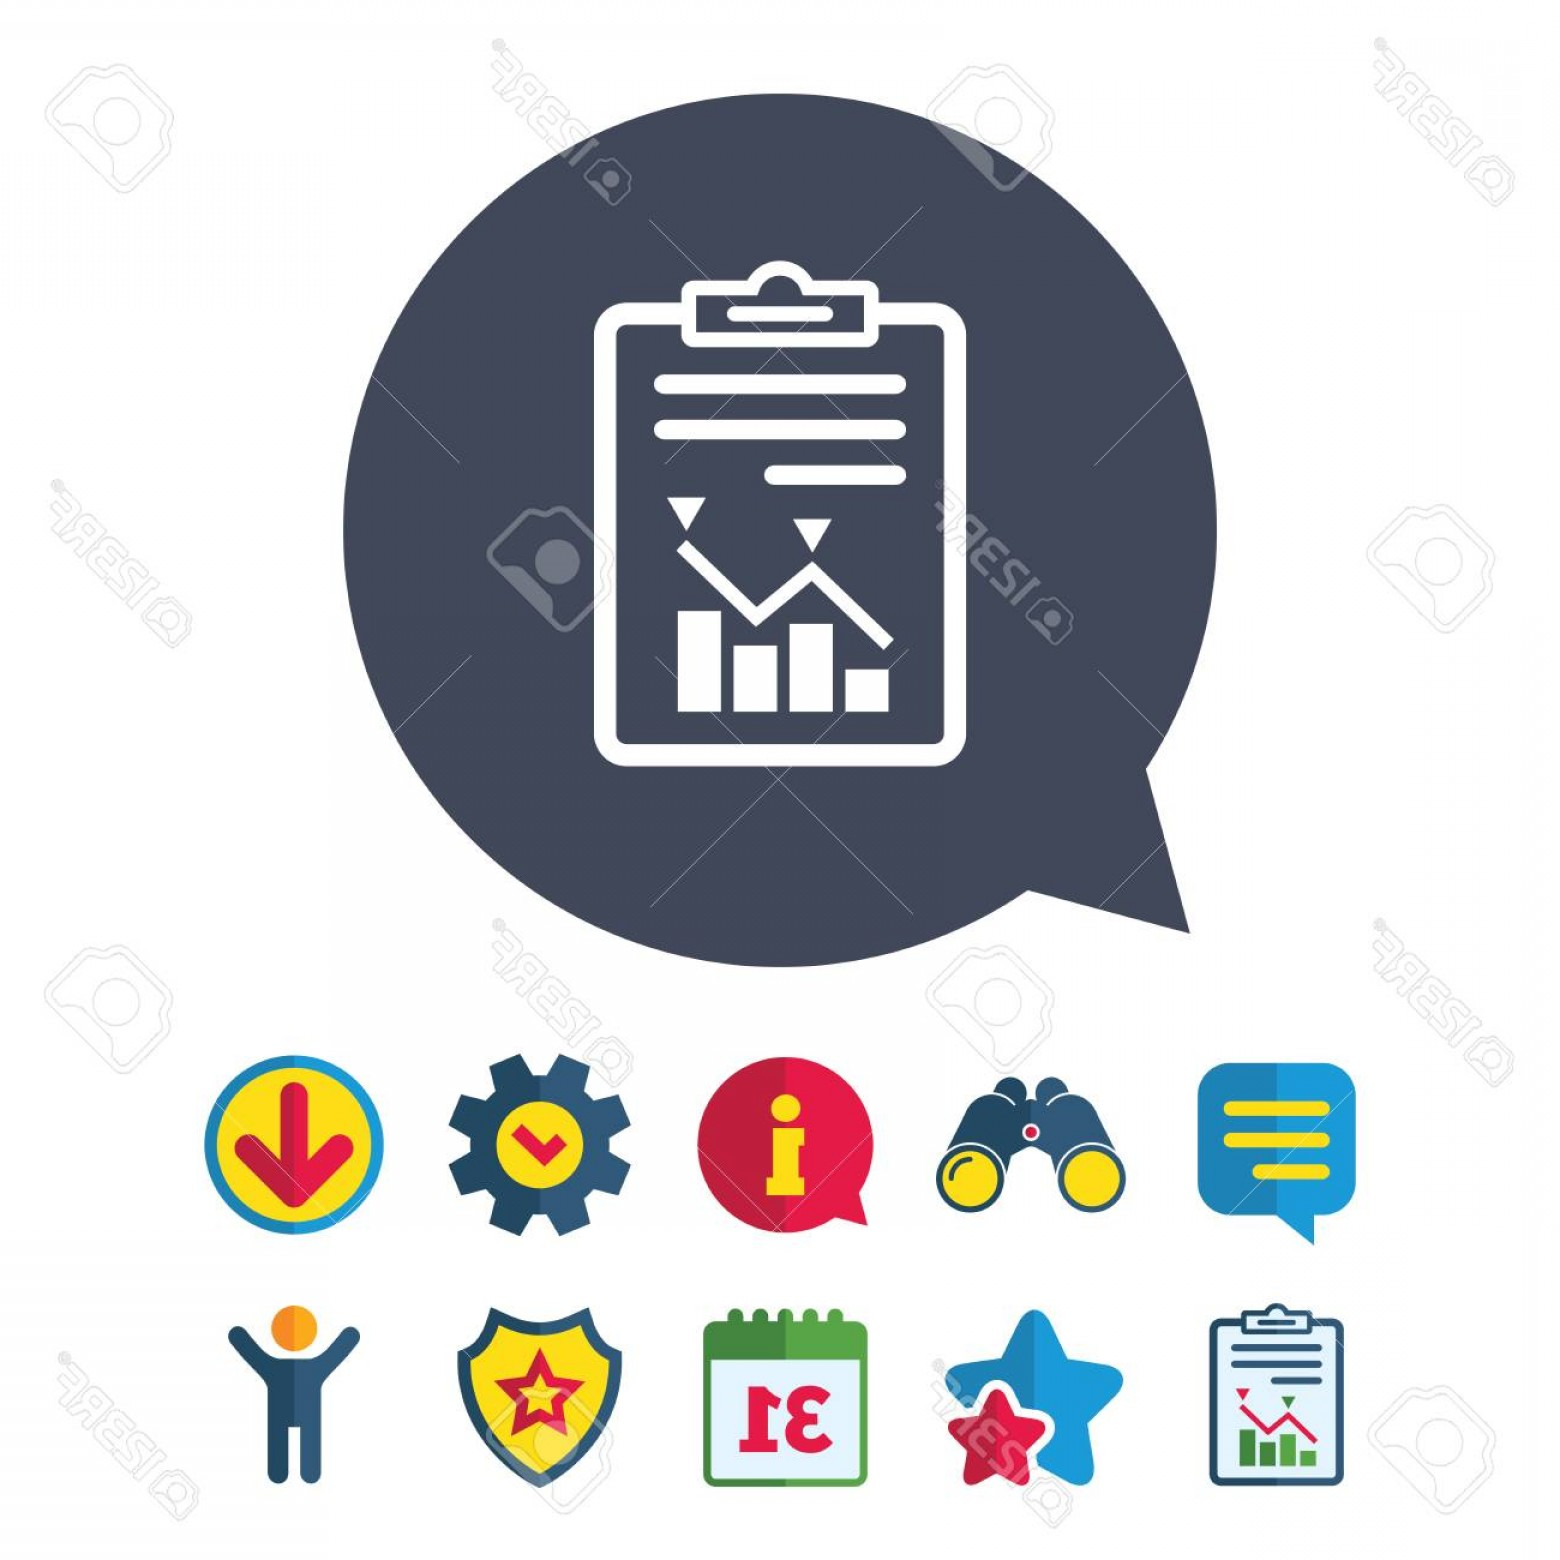 Art Project Icon Vector: Photostock Vector Project Management Icon Report Document Symbol Accounting File With Charts Symbol Information Report